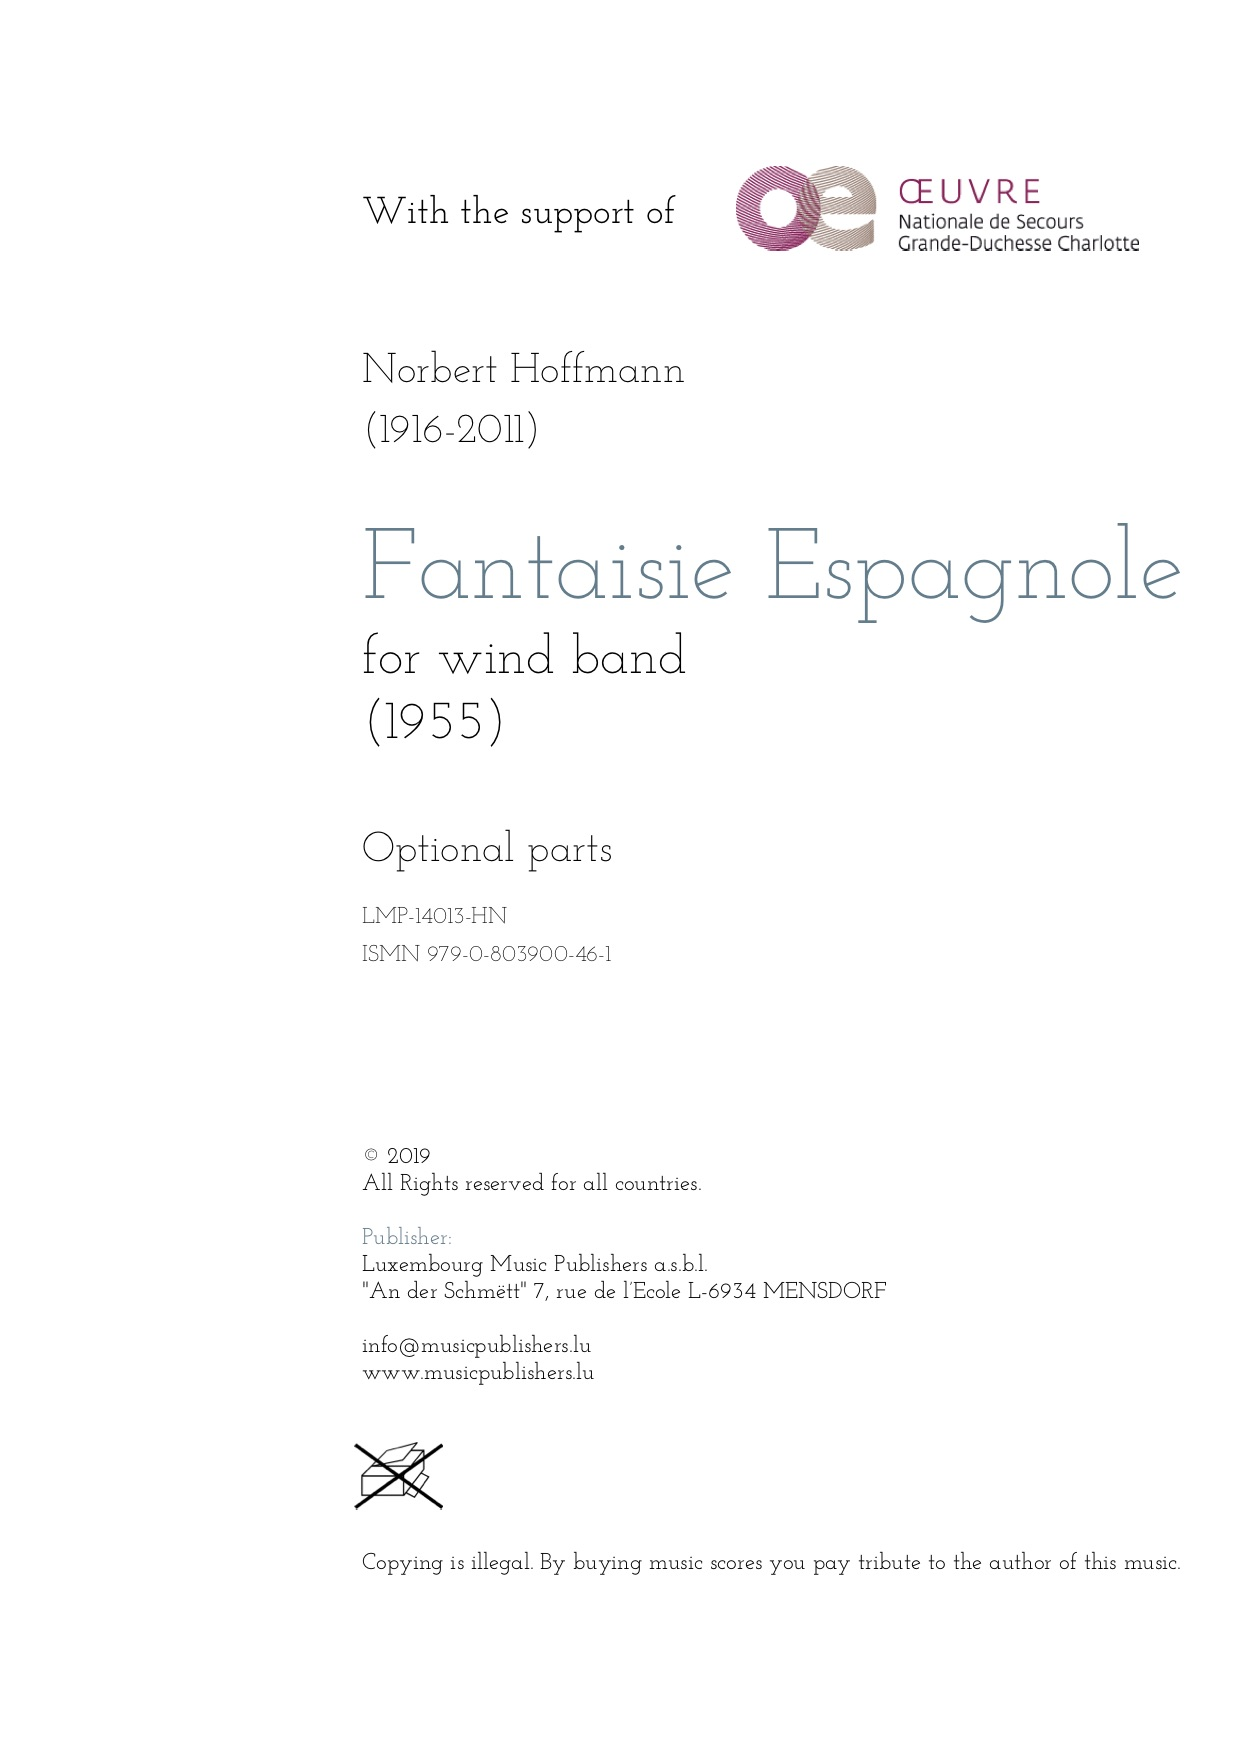 Fantaisie Espagnole. Sheet Music by Norbert Hoffmann, composer. Music for wind orchestra. Music for symphonic wind orchestra/band. Optional parts.